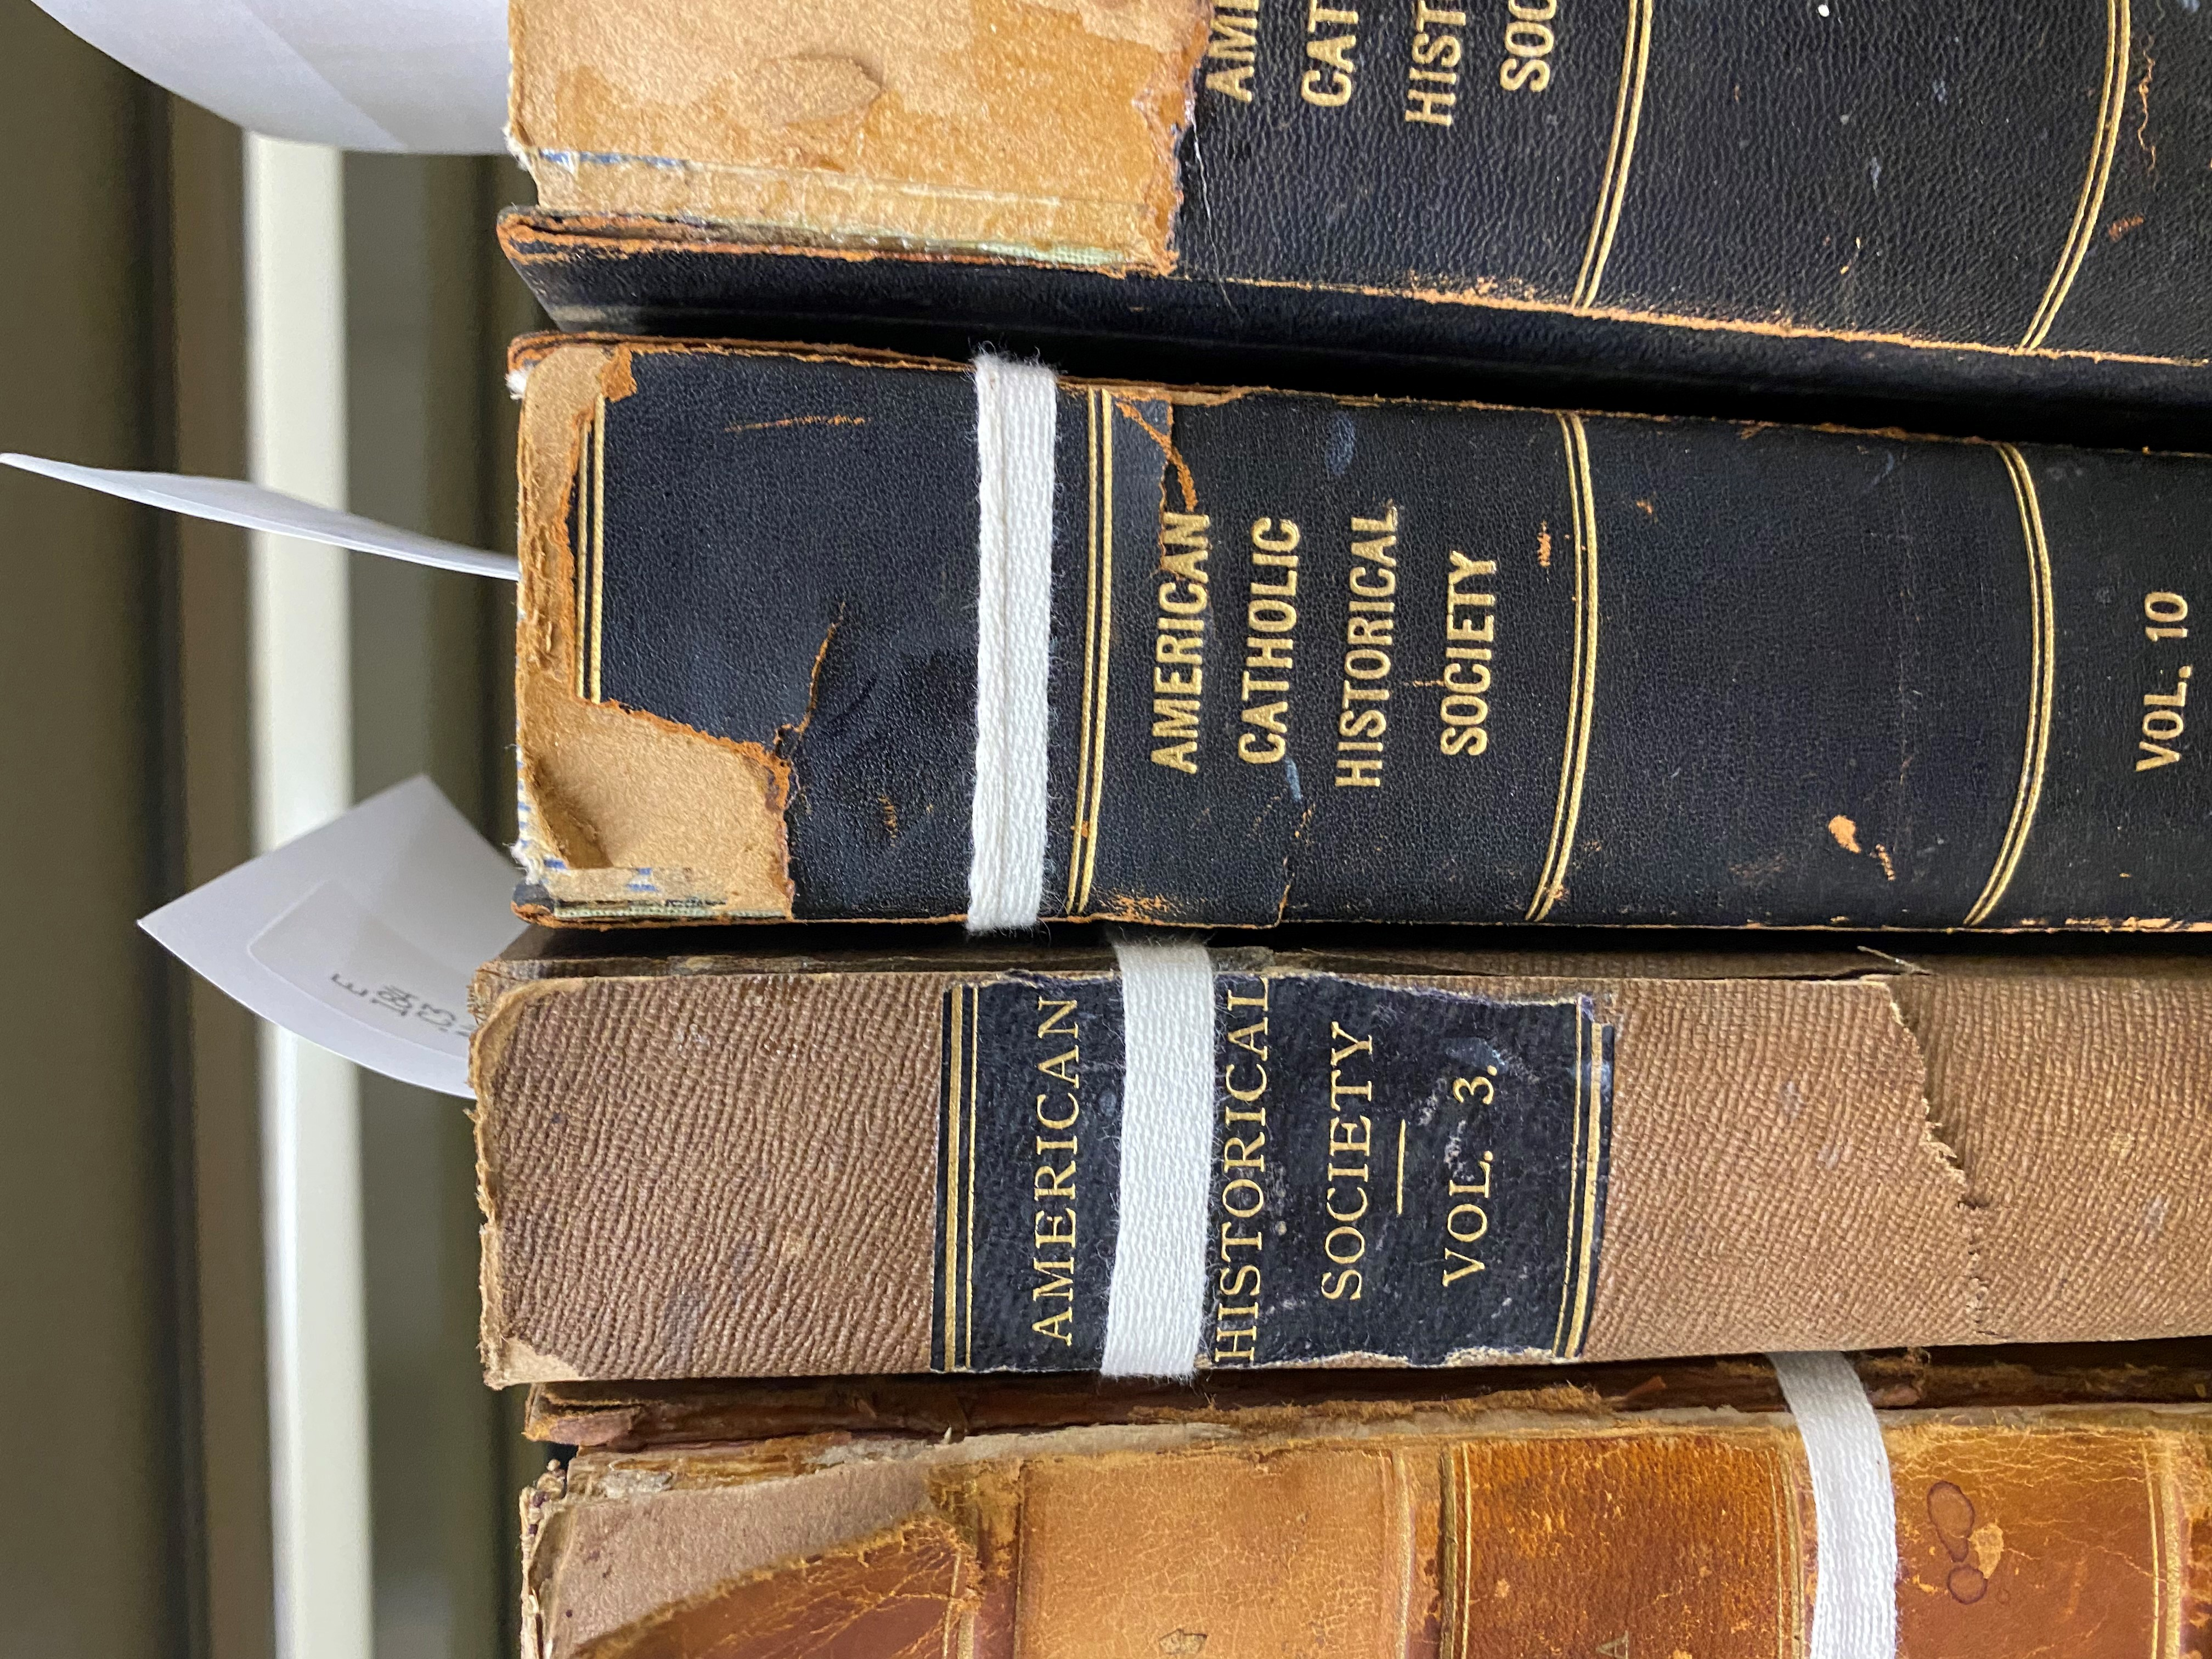 Rare books shelved in the archives